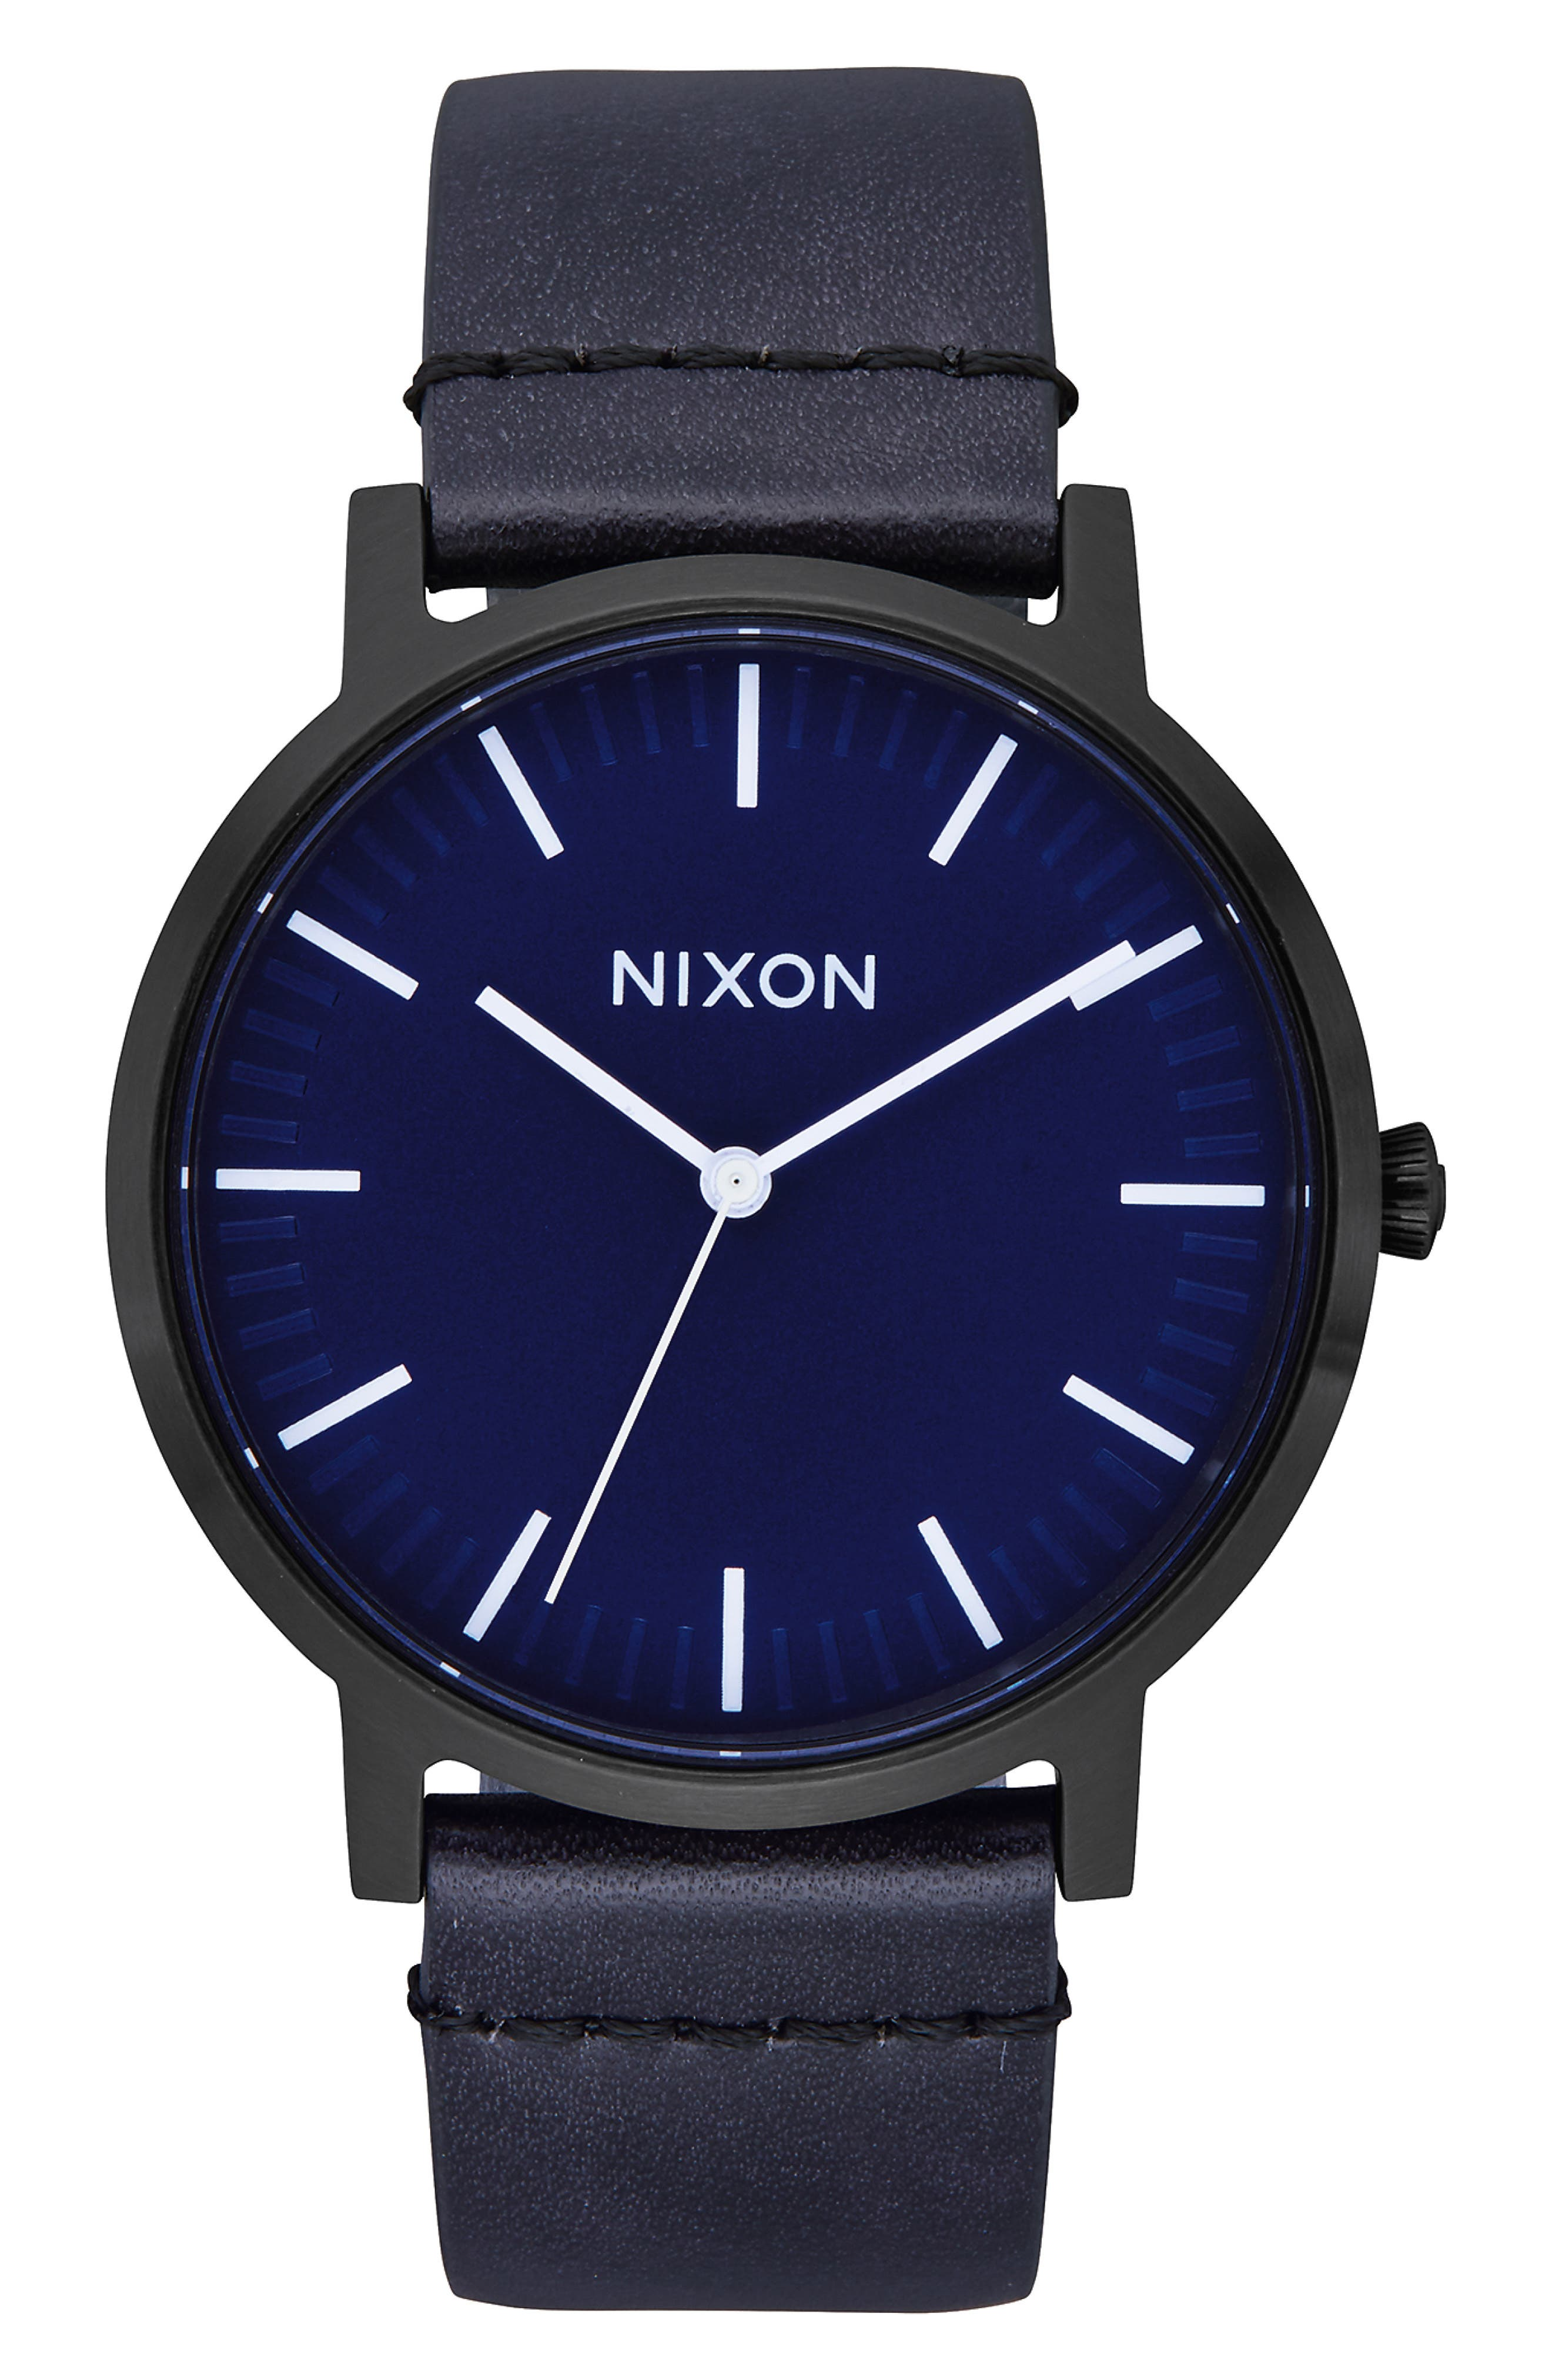 NIXON Porter Round Leather Strap Watch, 40mm, Main, color, BLACK/ DARK BLUE/ BLACK